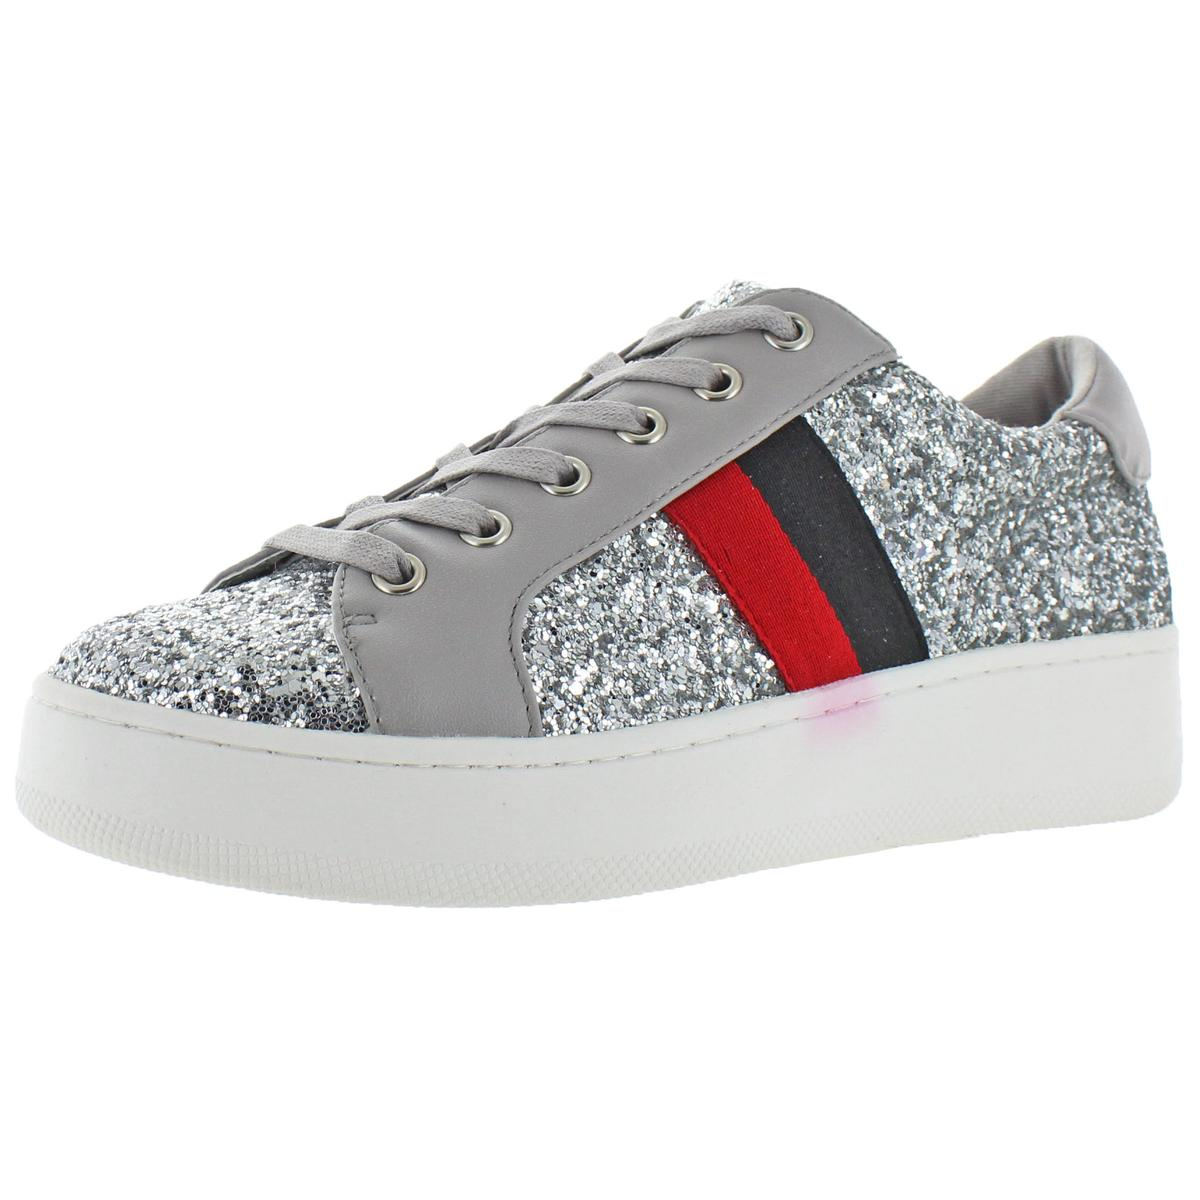 d8bf4c29b90 Details about Steve Madden Womens Belle Silver Fashion Sneakers Shoes 7  Medium (B